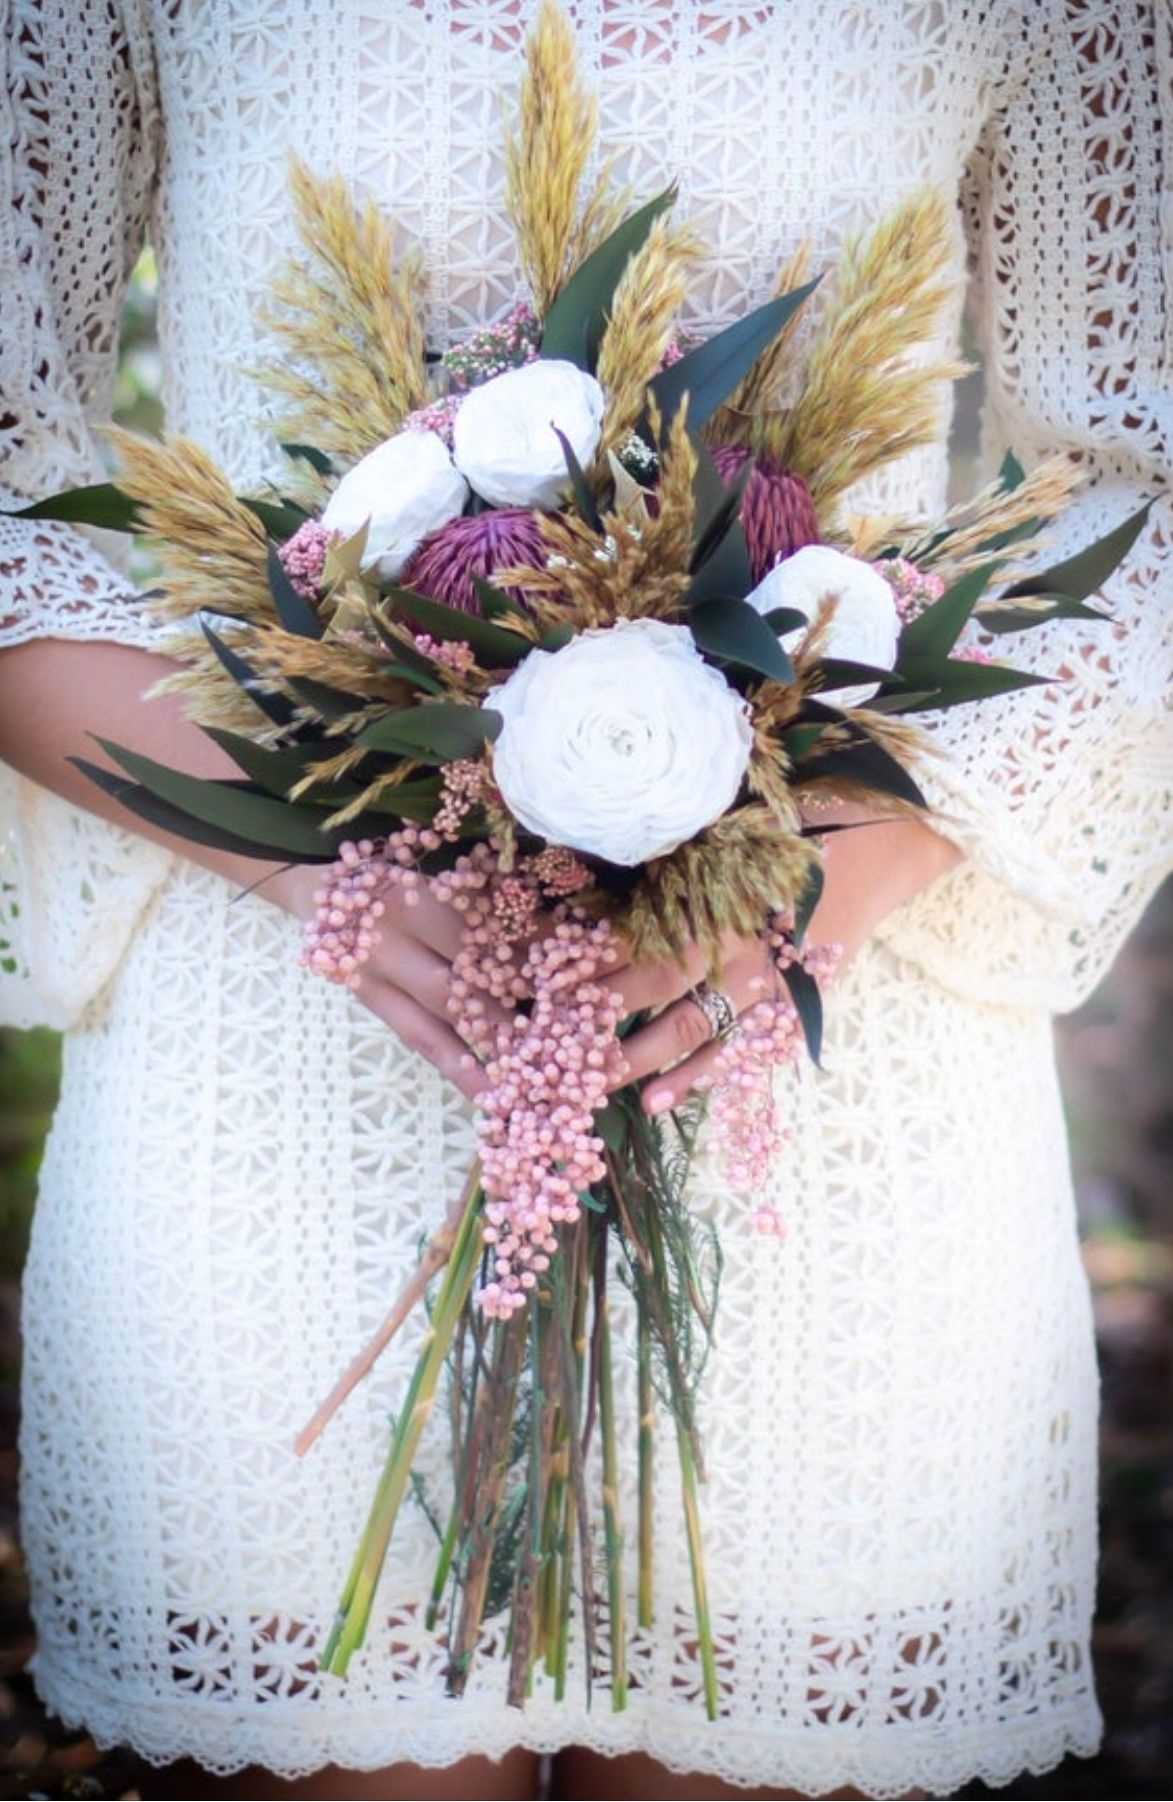 Lovely unique dried flower bouquet by Pick a Bloom